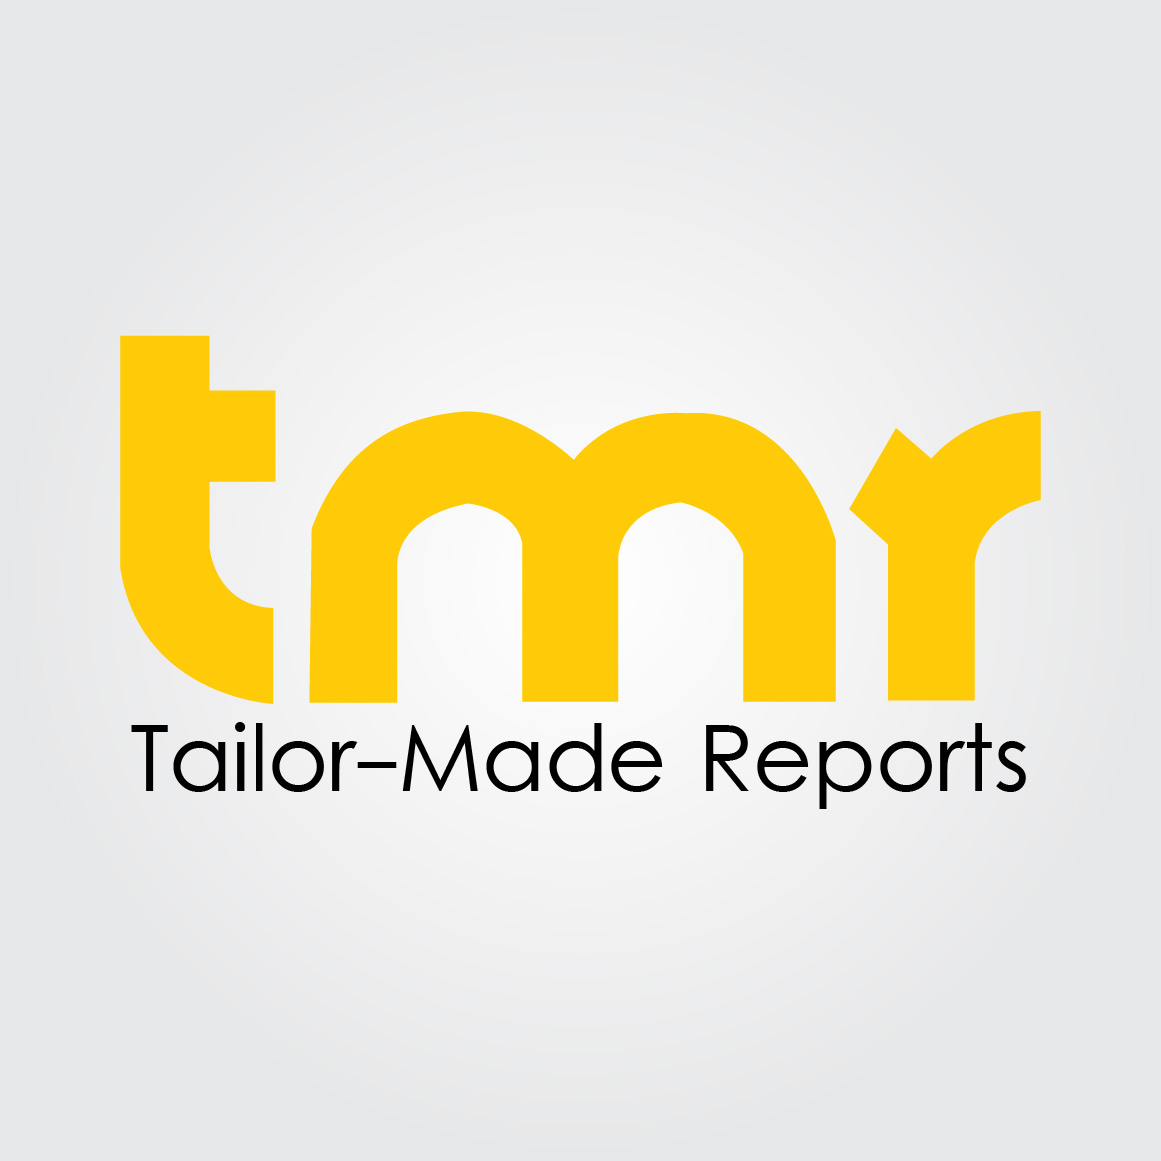 Asia-Pacific Commodity Plastics Market is Continues to Dominate the Global Market | TMR Research Study